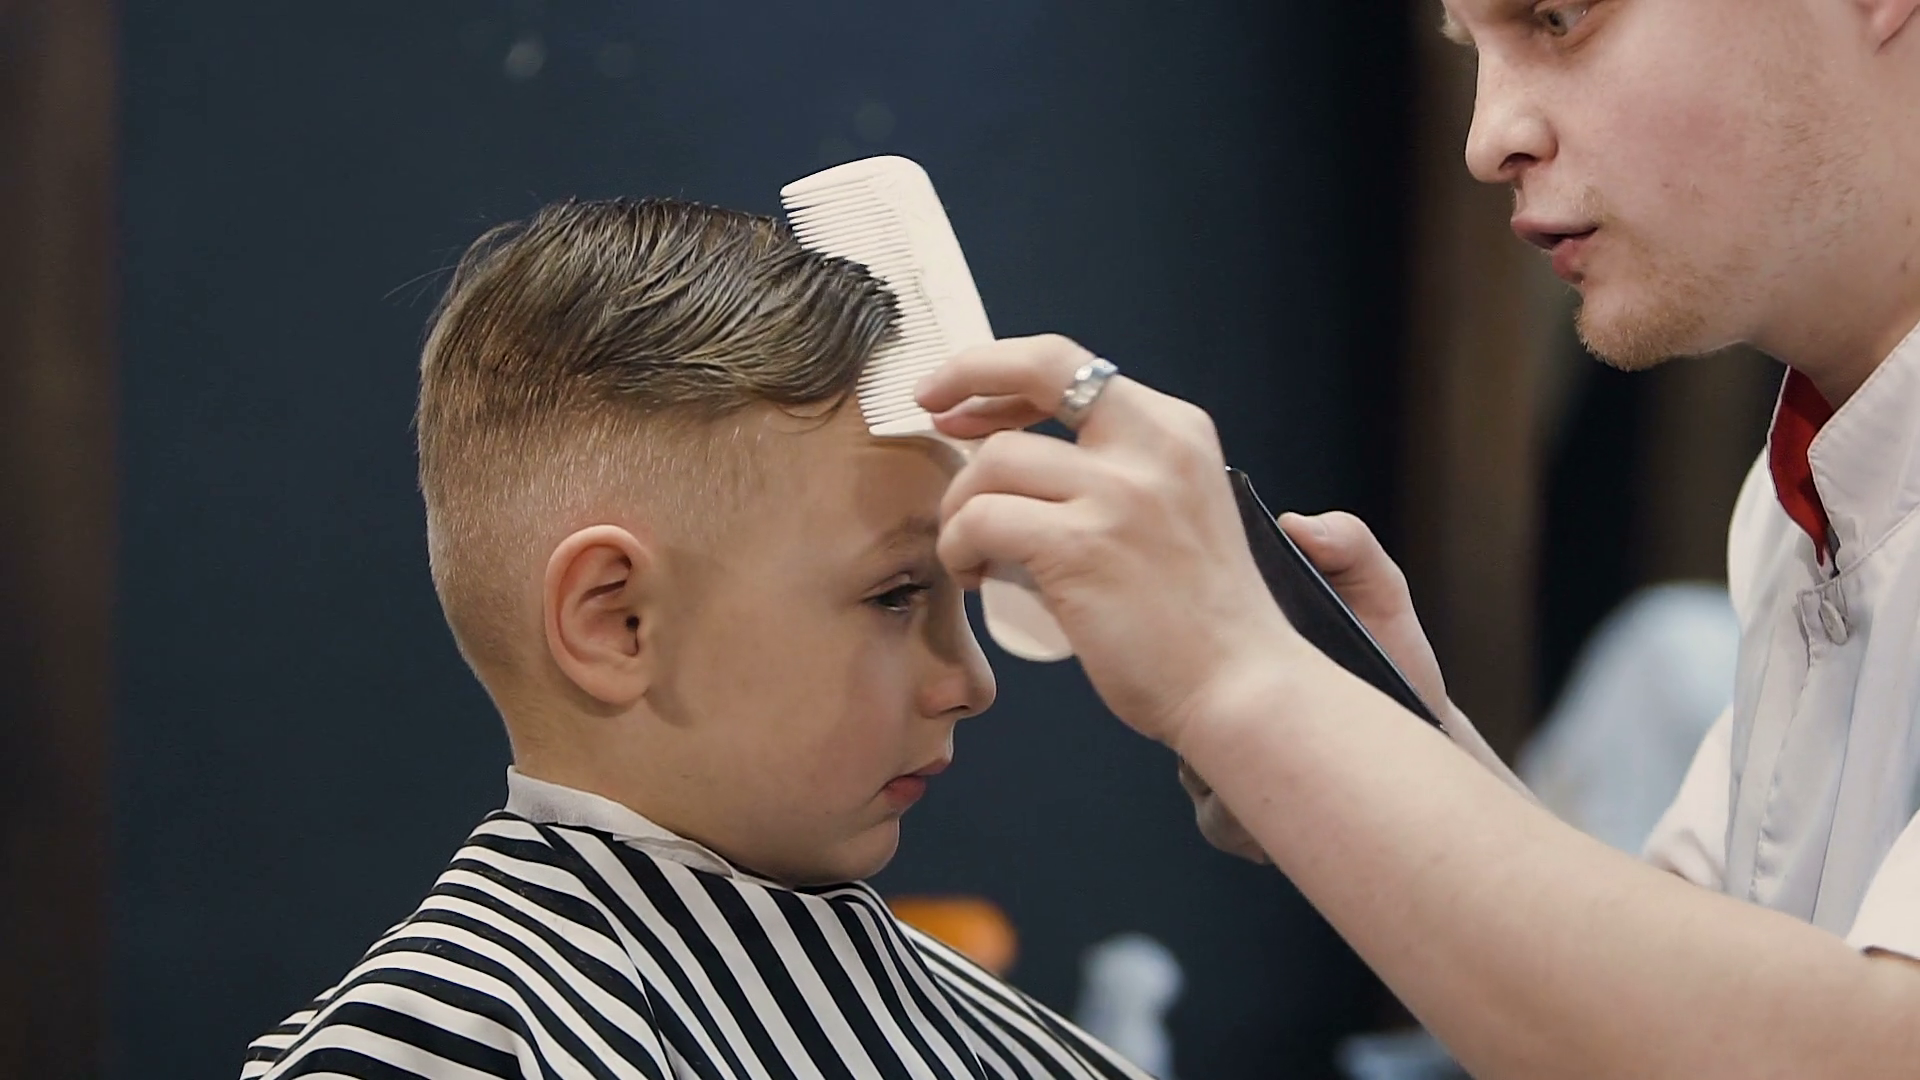 Hairdresser Making Hair Cut For Little Boy Machine Barber Cutting Hair With Hair Trimmer And Hairbrush Child Haircut With Comb And Razor New Hairstyle For The Beautiful Boy Slow Motion Stock Video